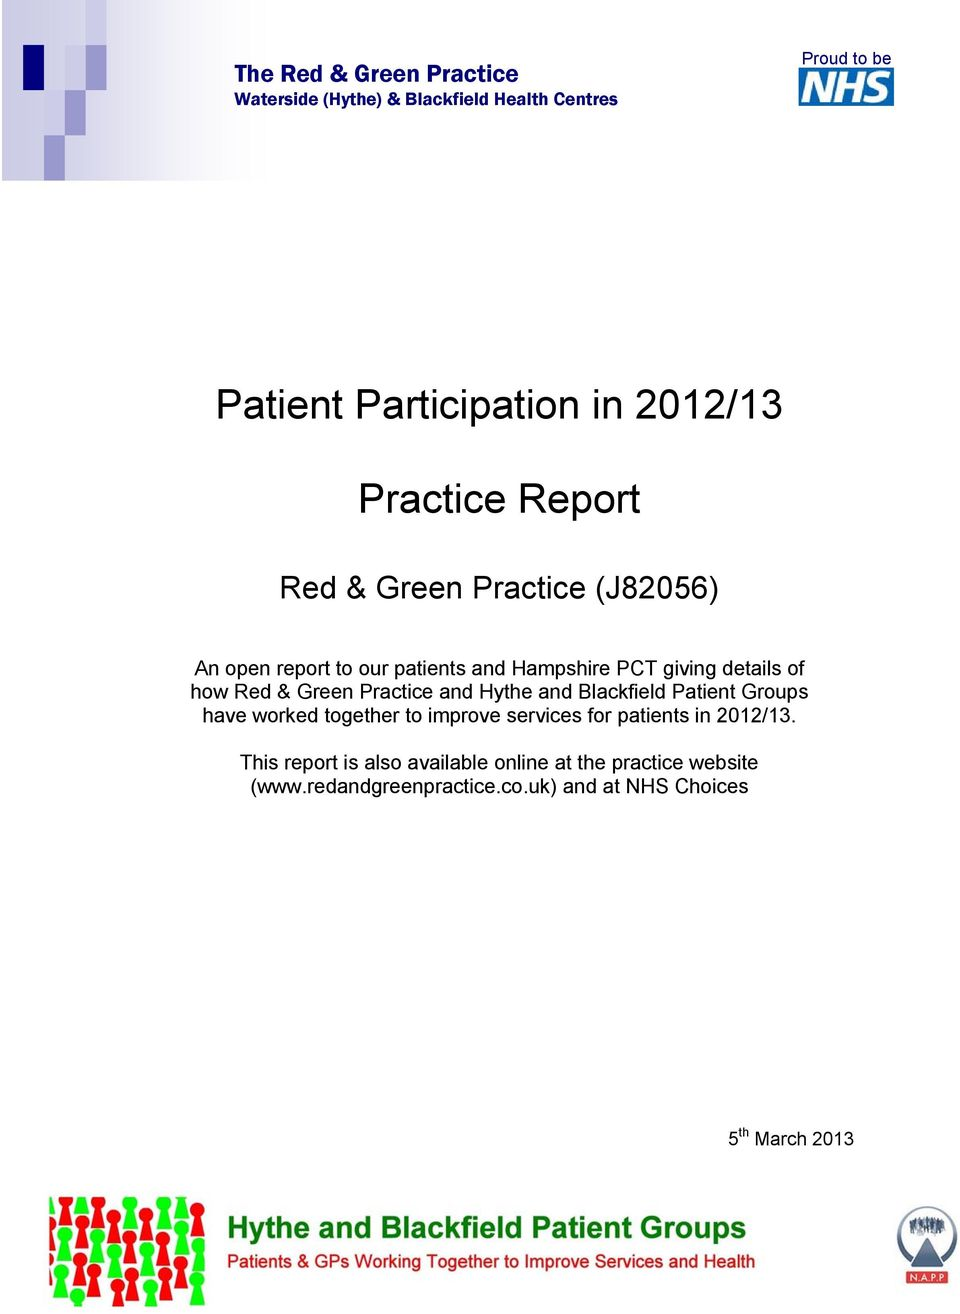 & Green Practice and Hythe and Blackfield Patient Groups have worked together to improve services for patients in 2012/13.